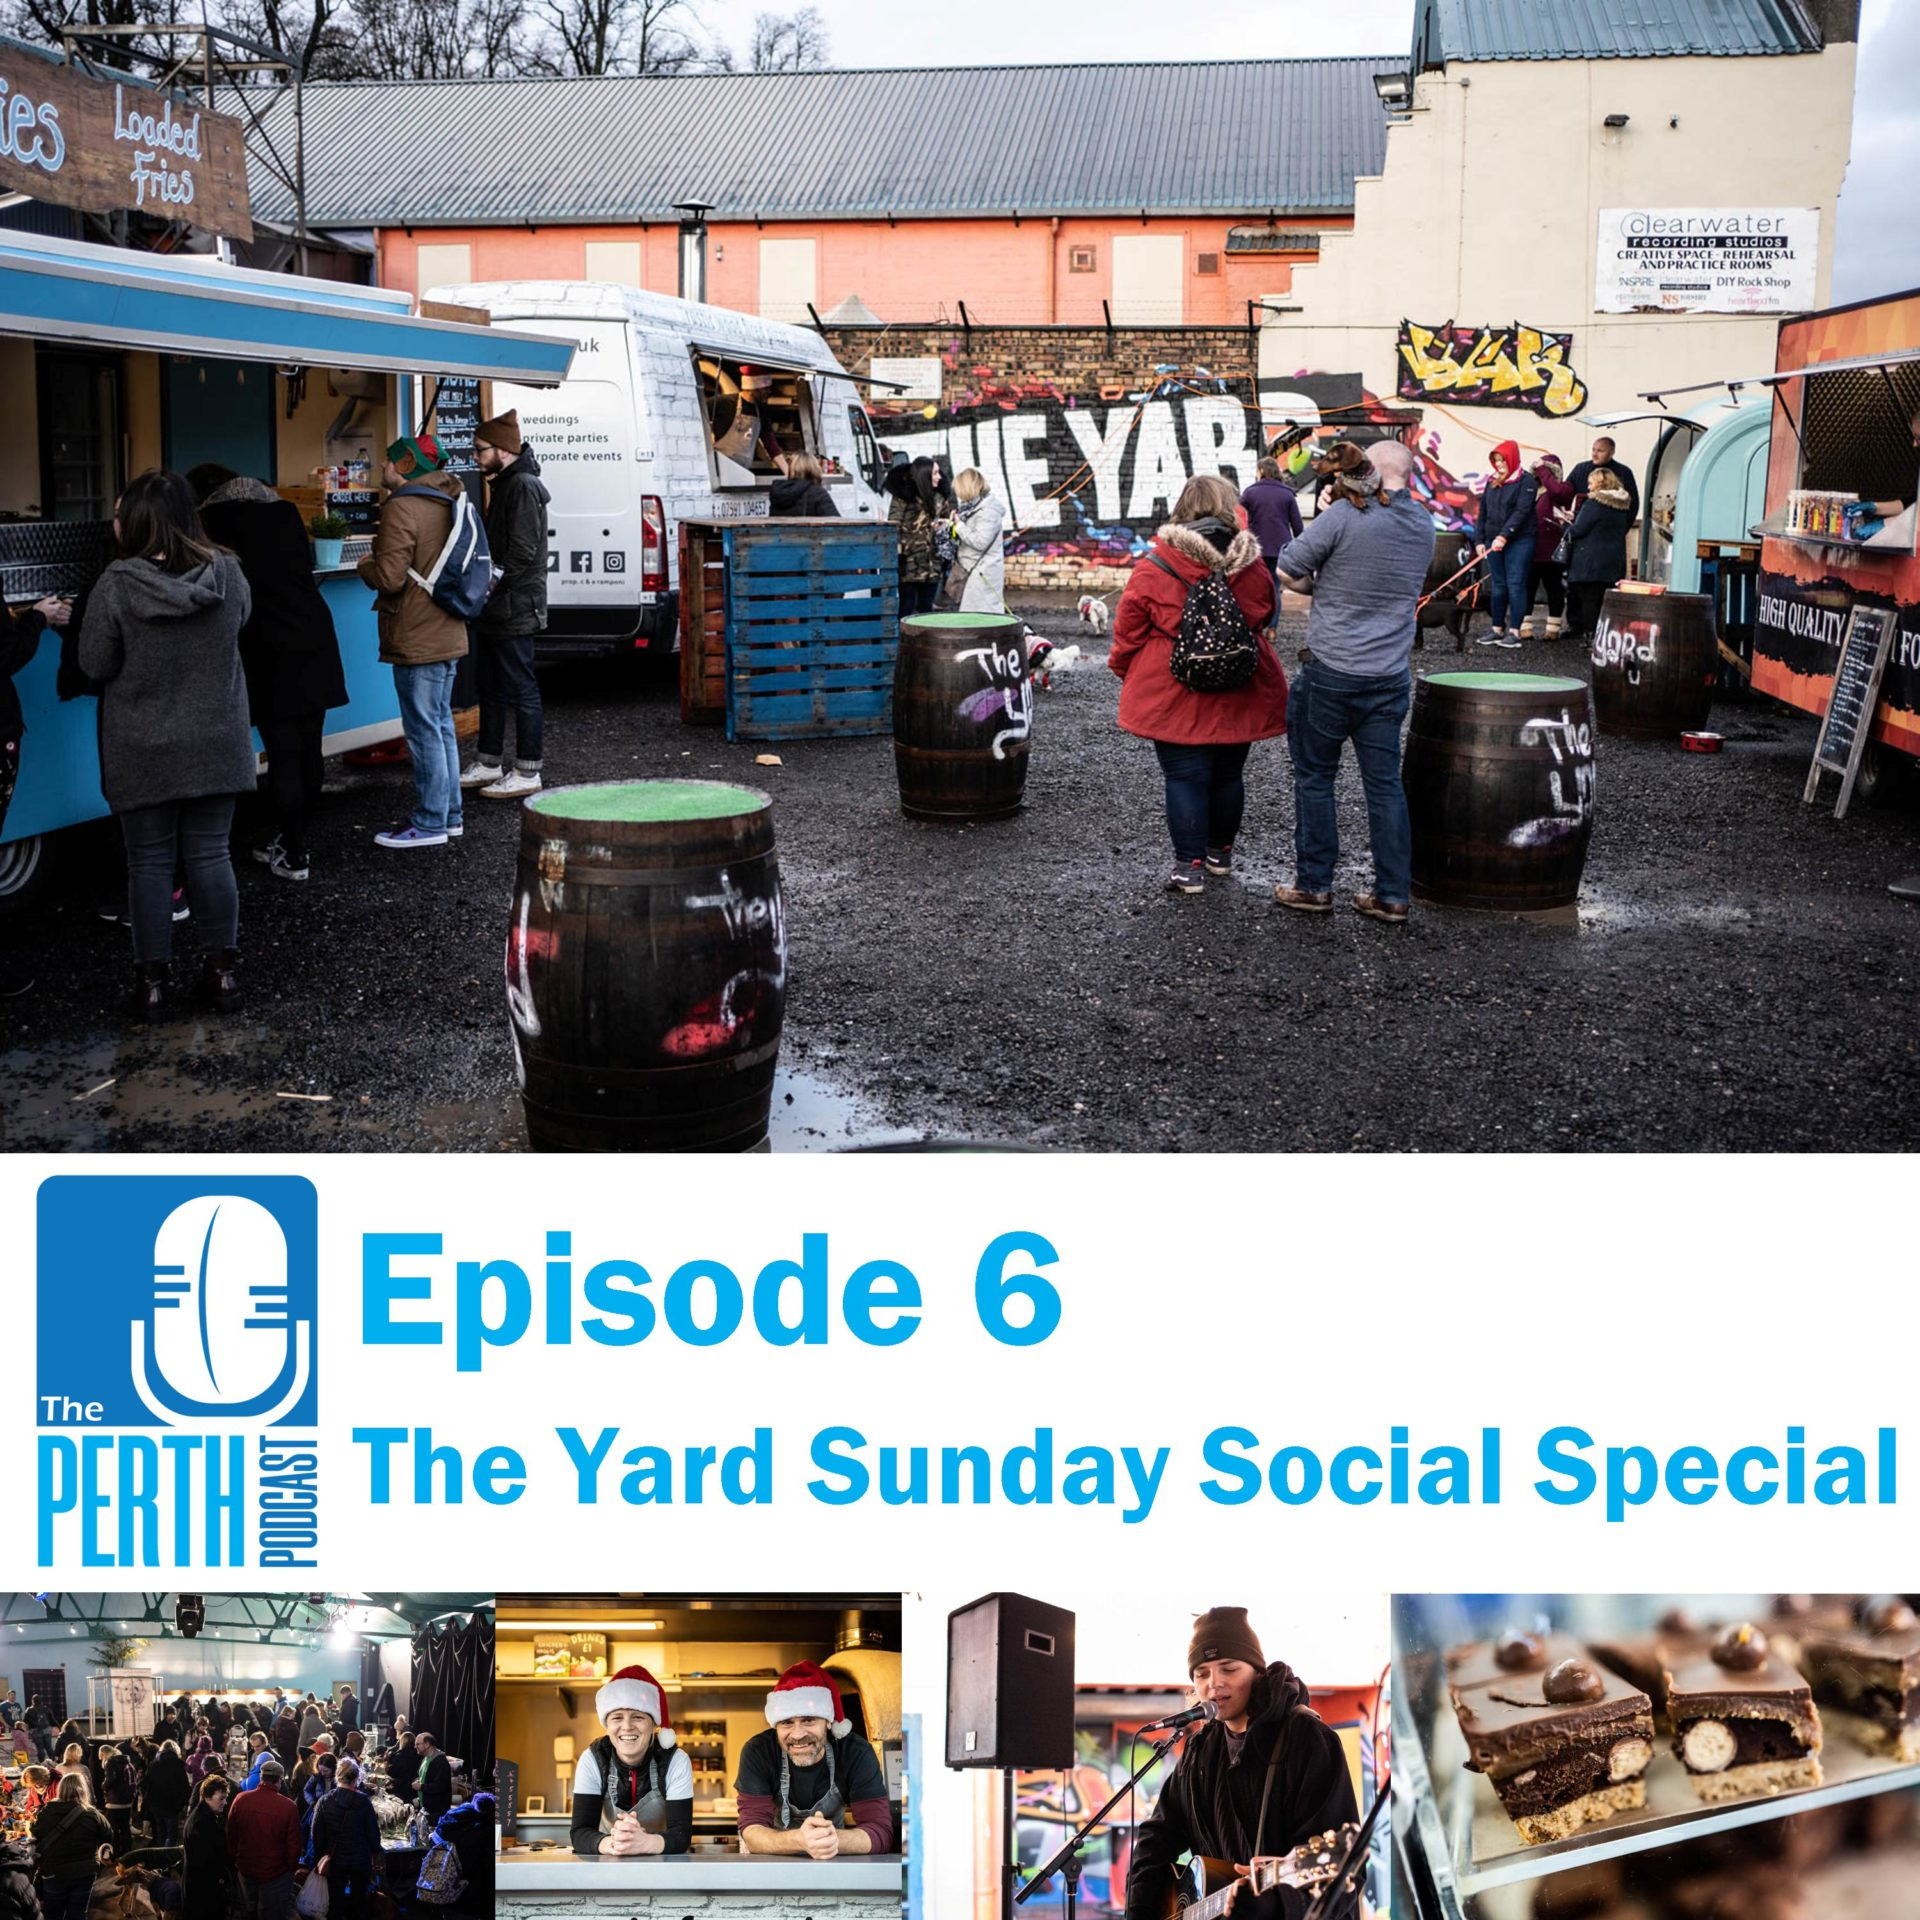 Episode 6 – The Yard Sunday Social Special